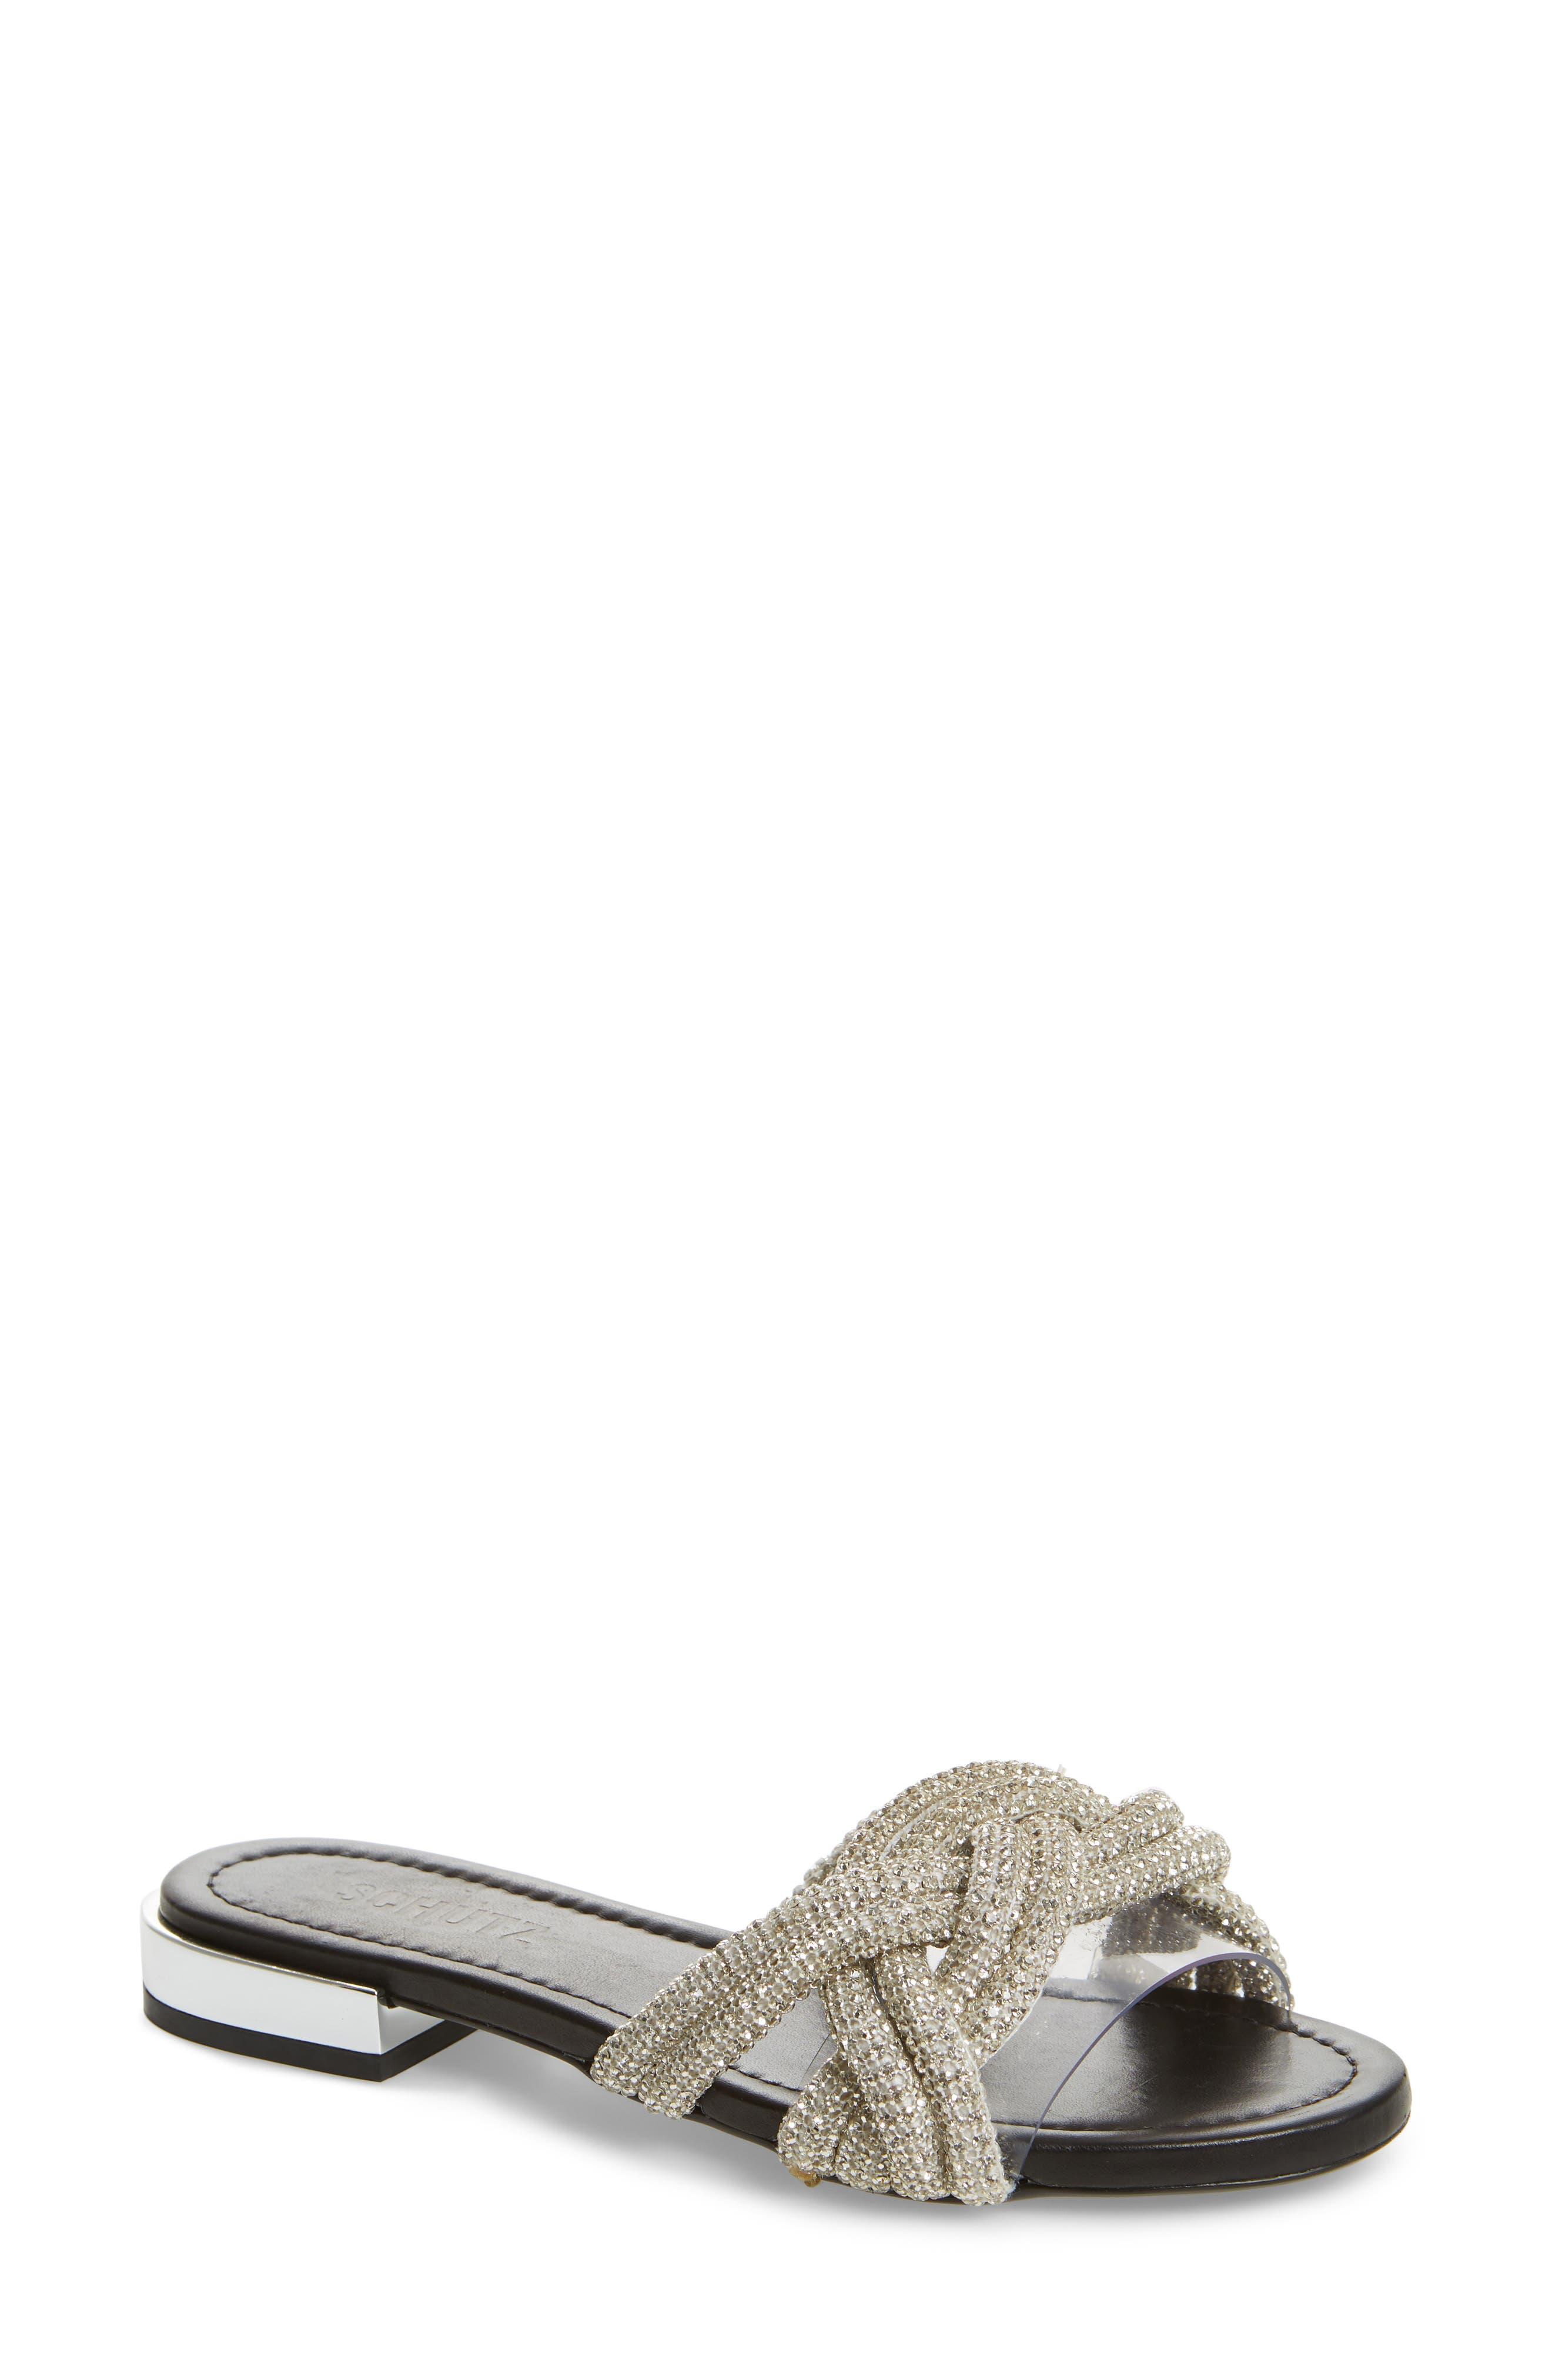 Lindy Braided Slide Sandal,                             Main thumbnail 1, color,                             SILVER METALLIC